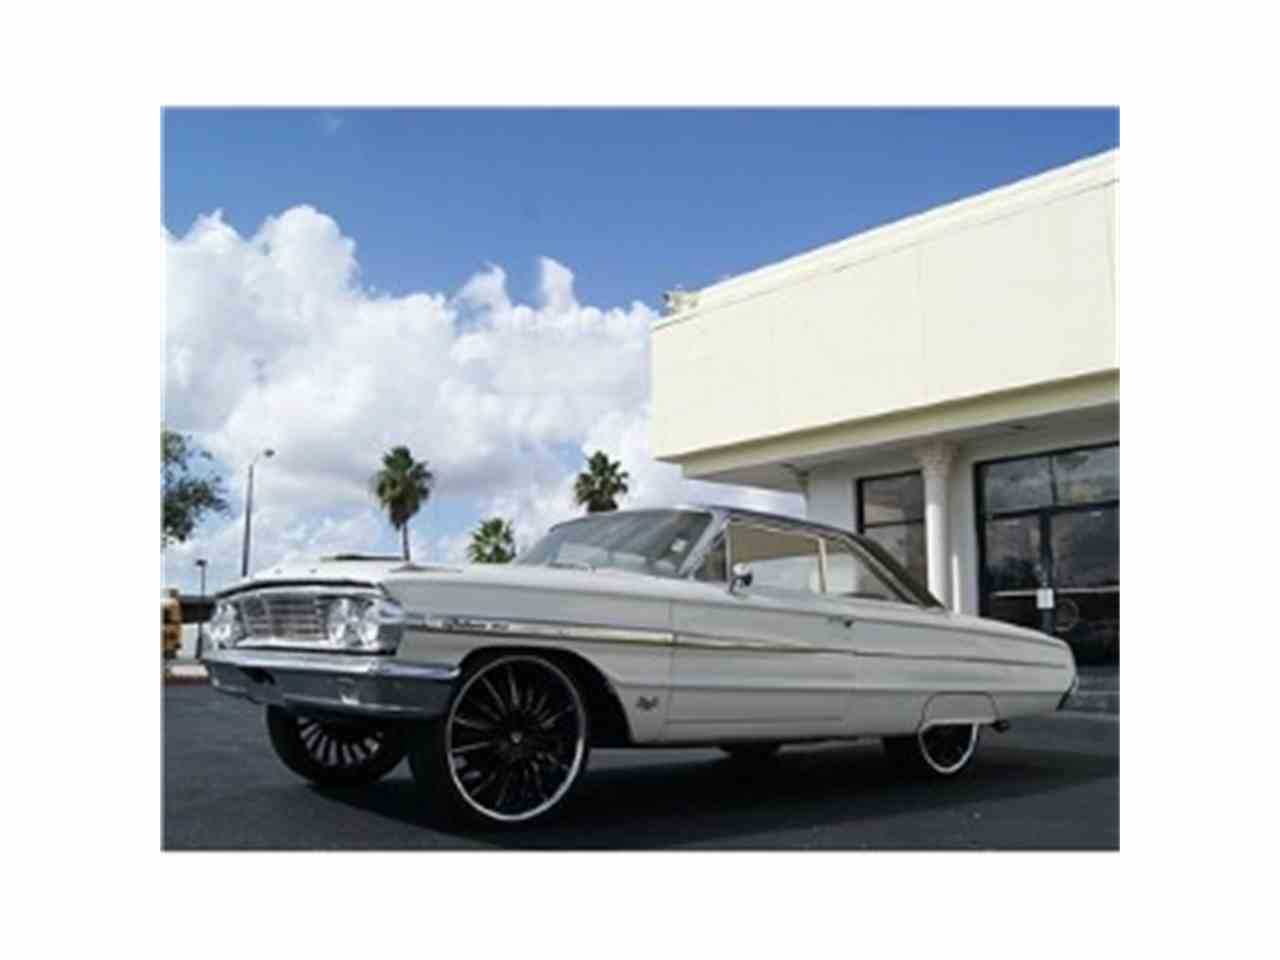 Large Picture of '64 Ford Galaxie - $24,500.00 - EXOE